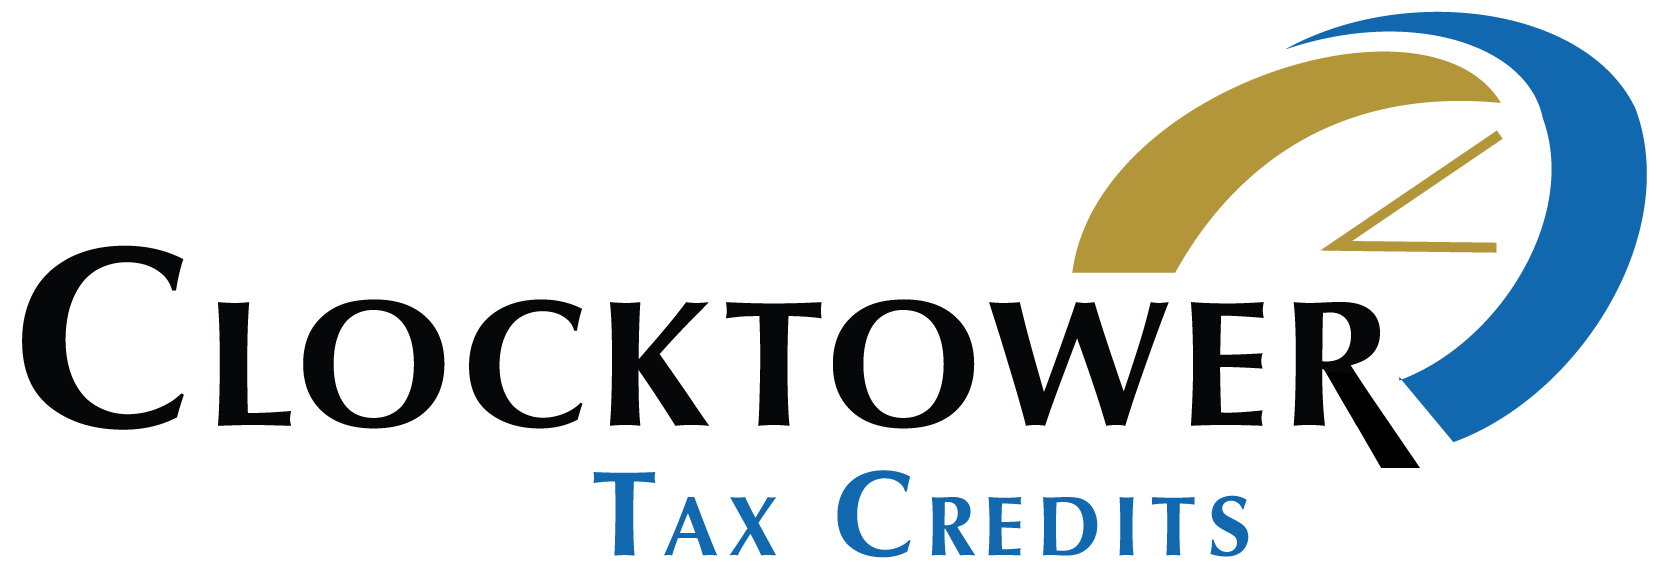 Frequently Asked Questions | Clocktower Tax Credits, LLC